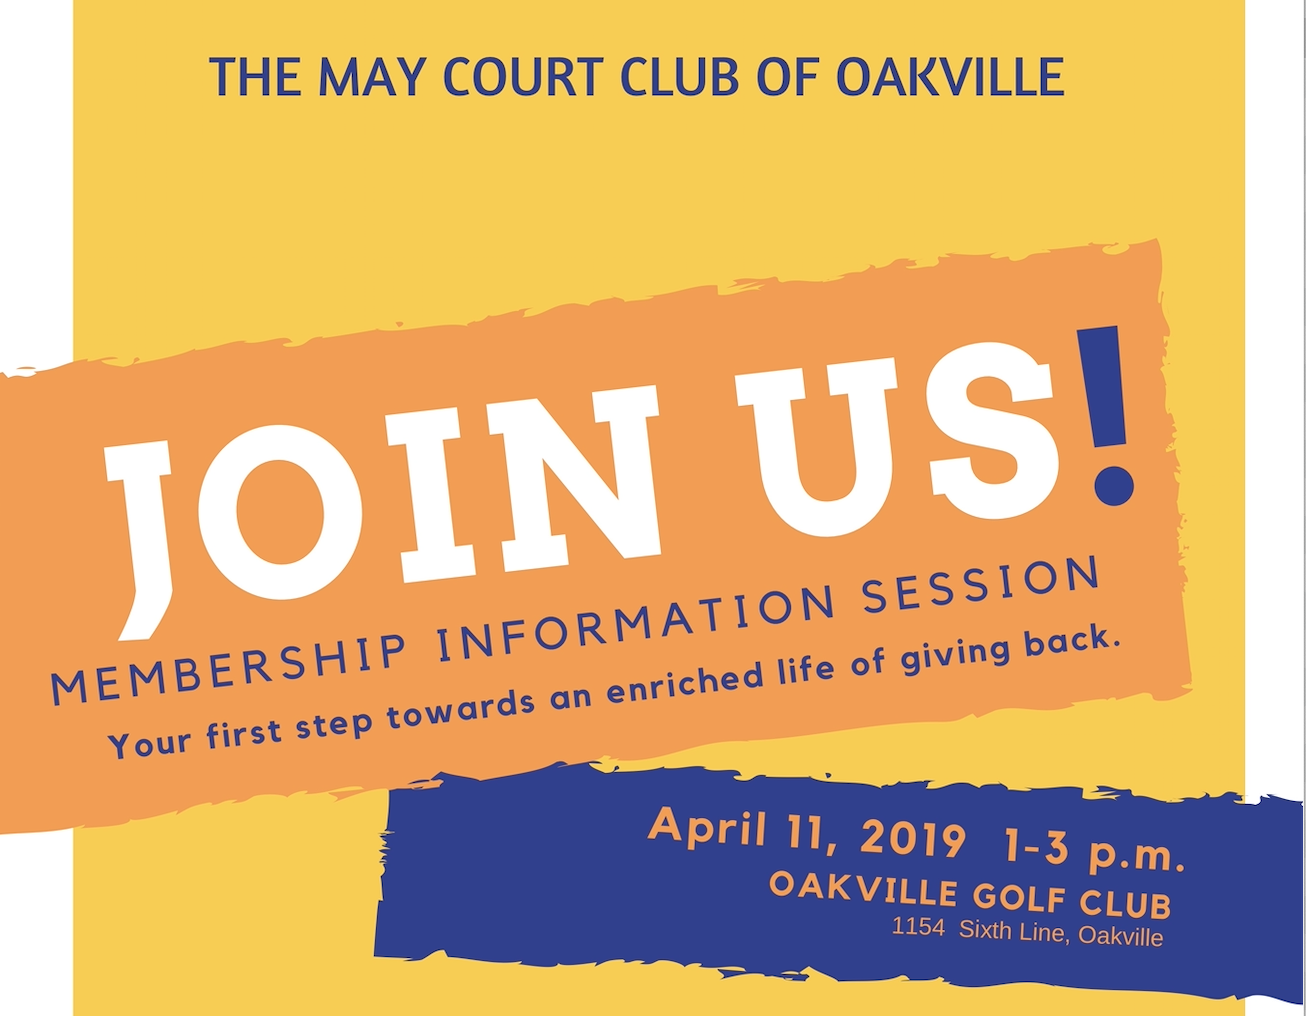 May Court Club of Oakville Membership Informaiton Session